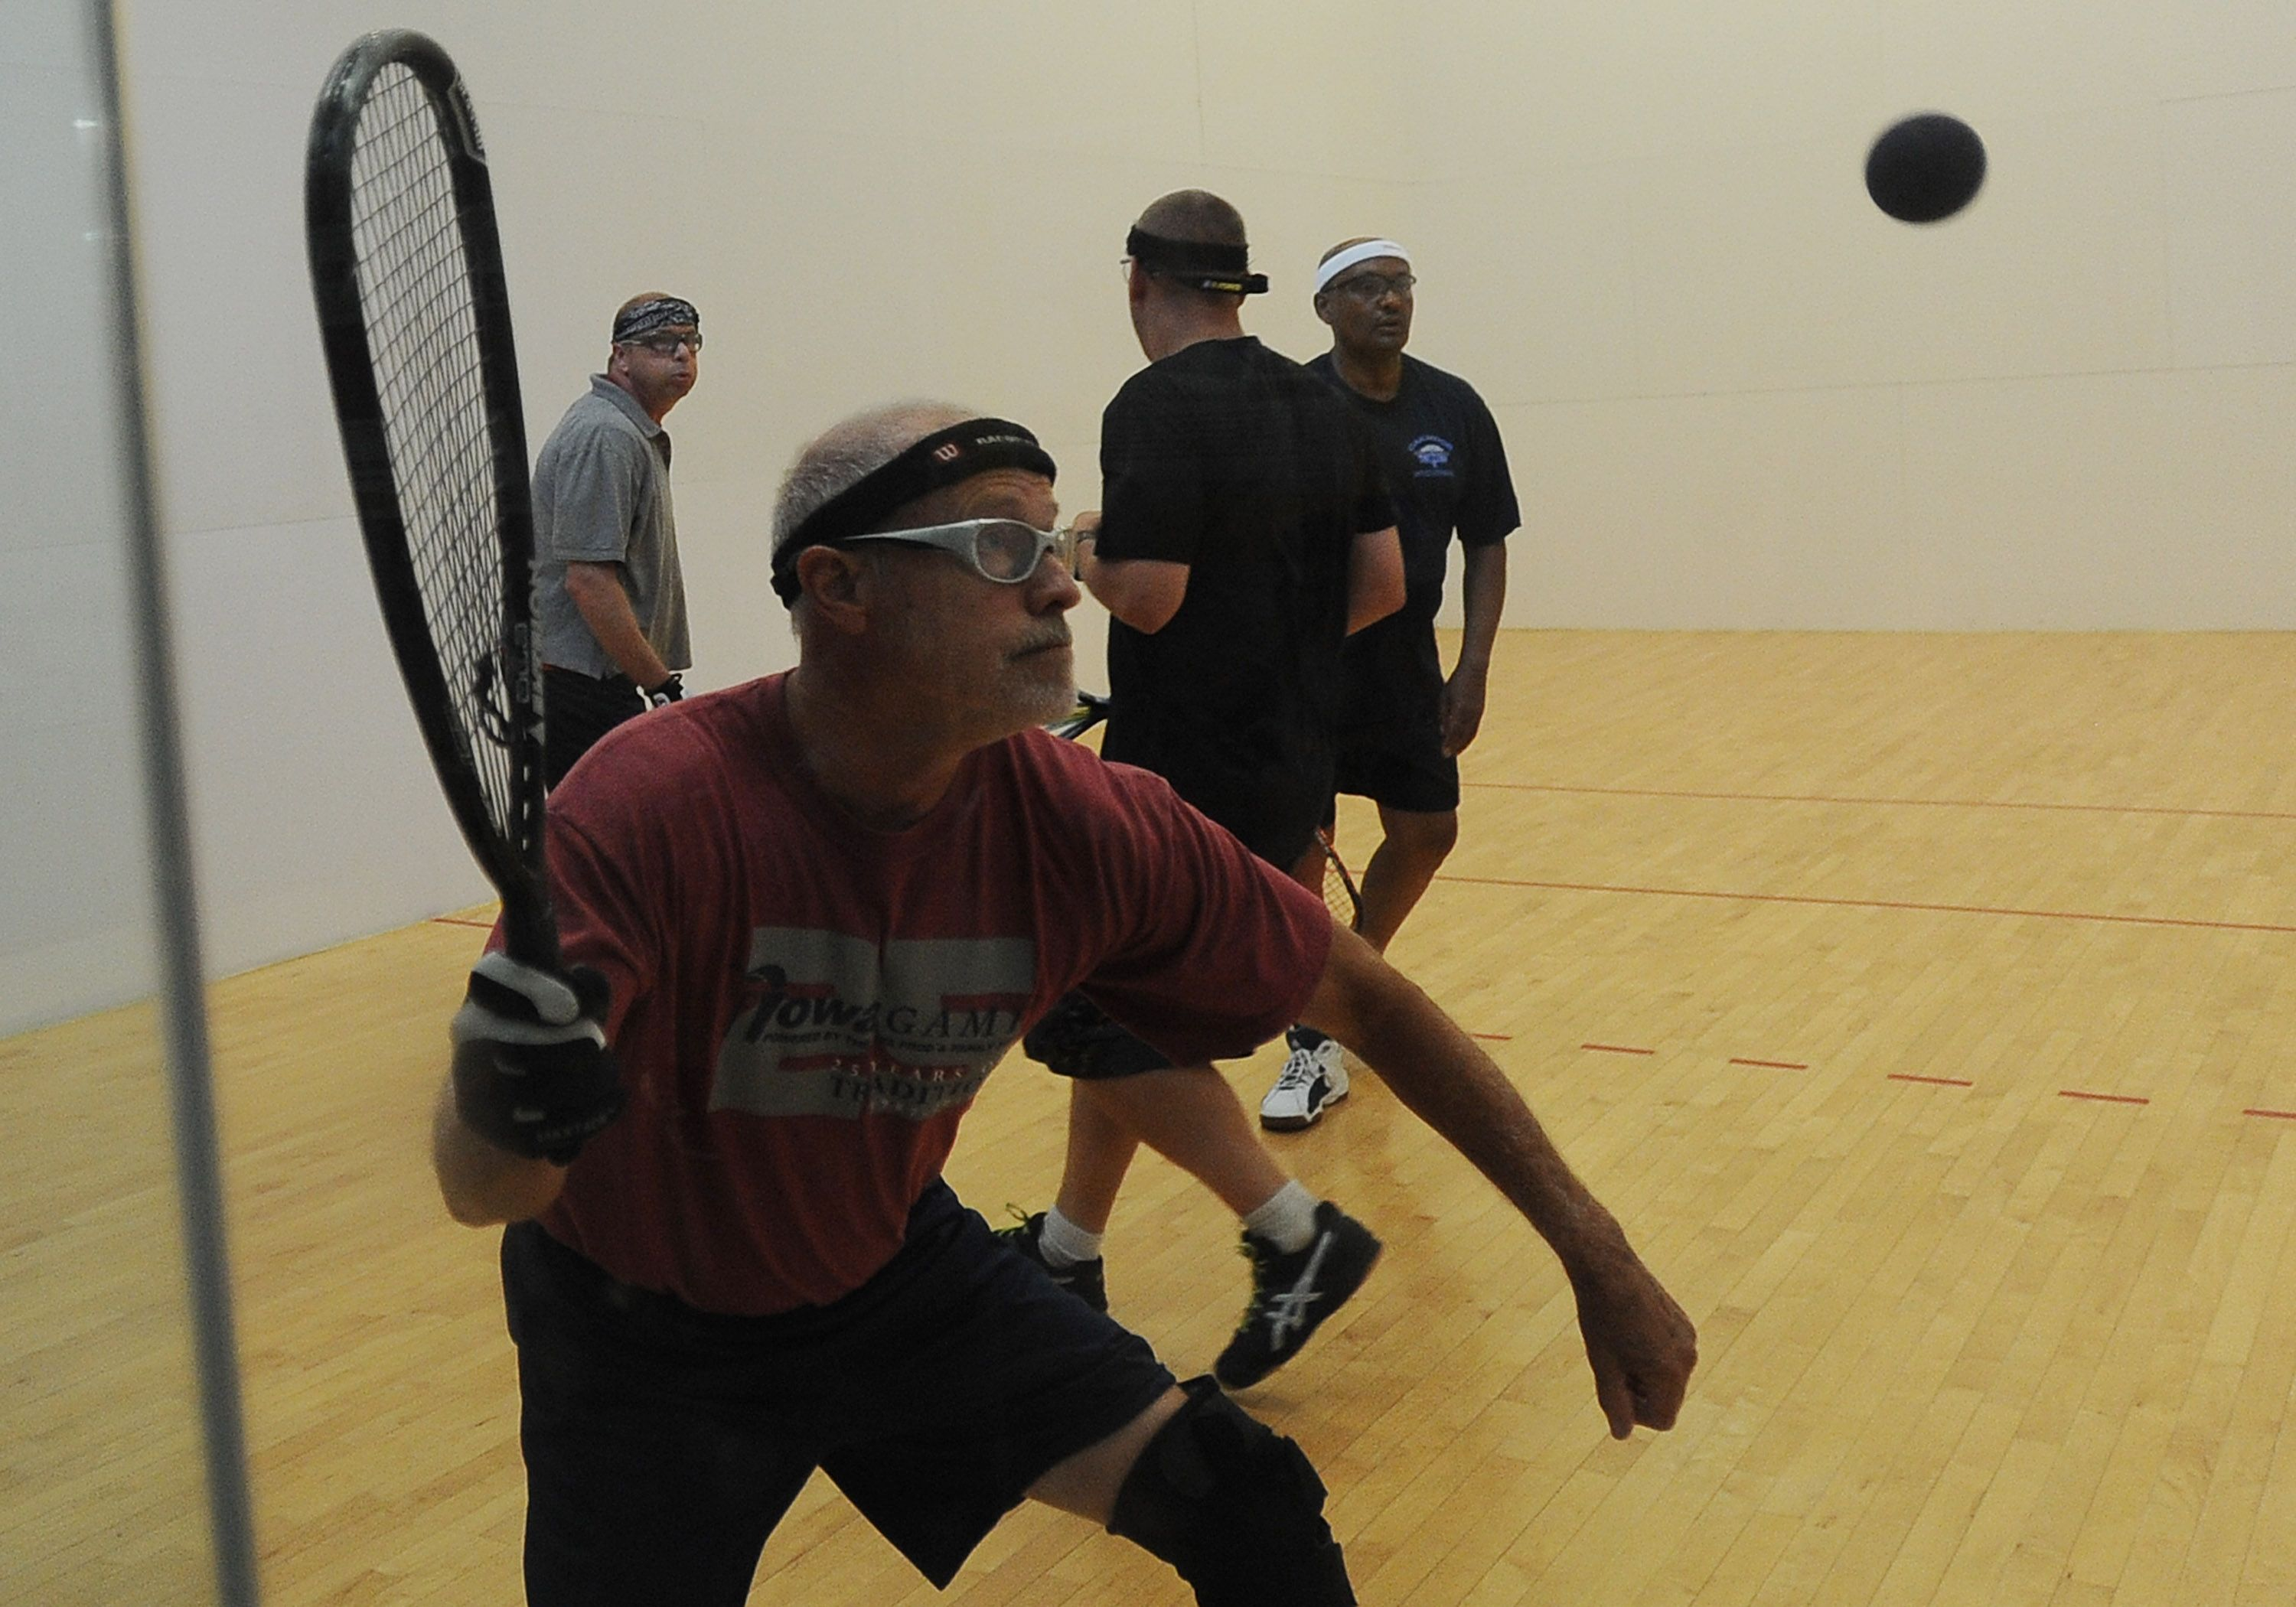 Ron Sweeney returns the ball during the racquetball double